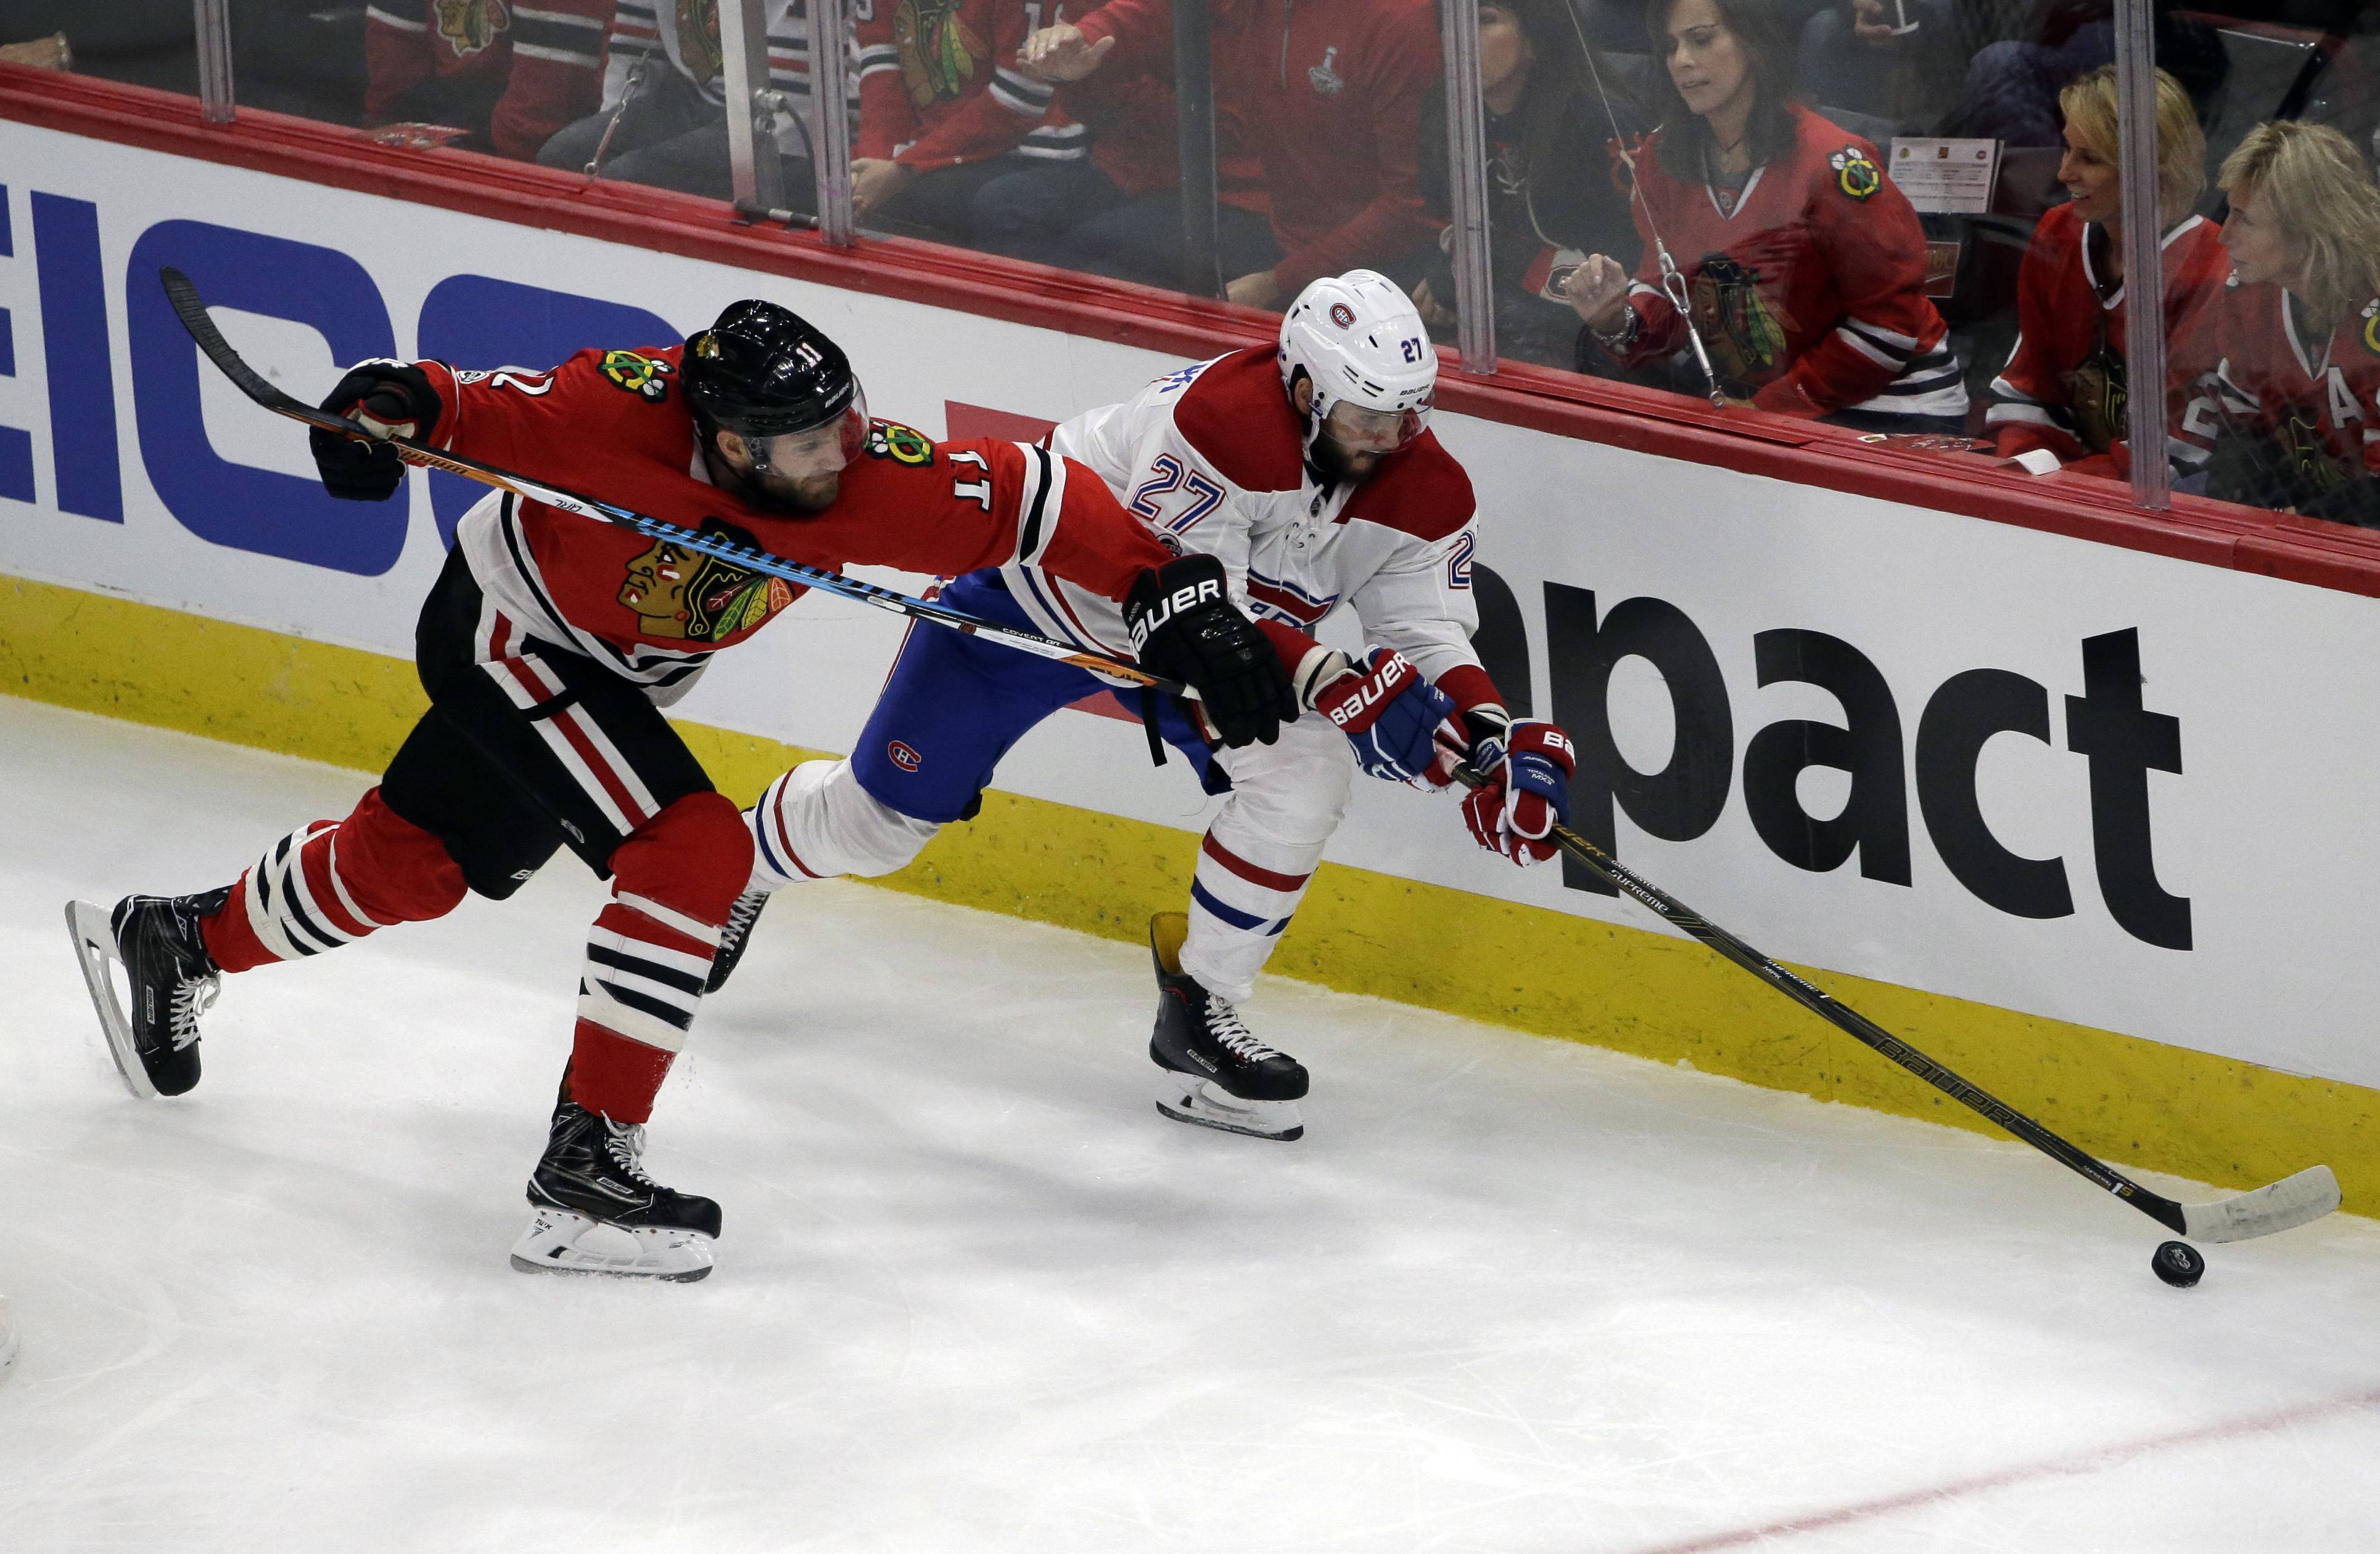 Montreal Canadiens left wing Alex Galchenyuk, right, controls the puck past Chicago Blackhawks defenseman Cody Franson during the first period of an NHL hockey game, Sunday, Nov. 5, 2017, in Chicago.